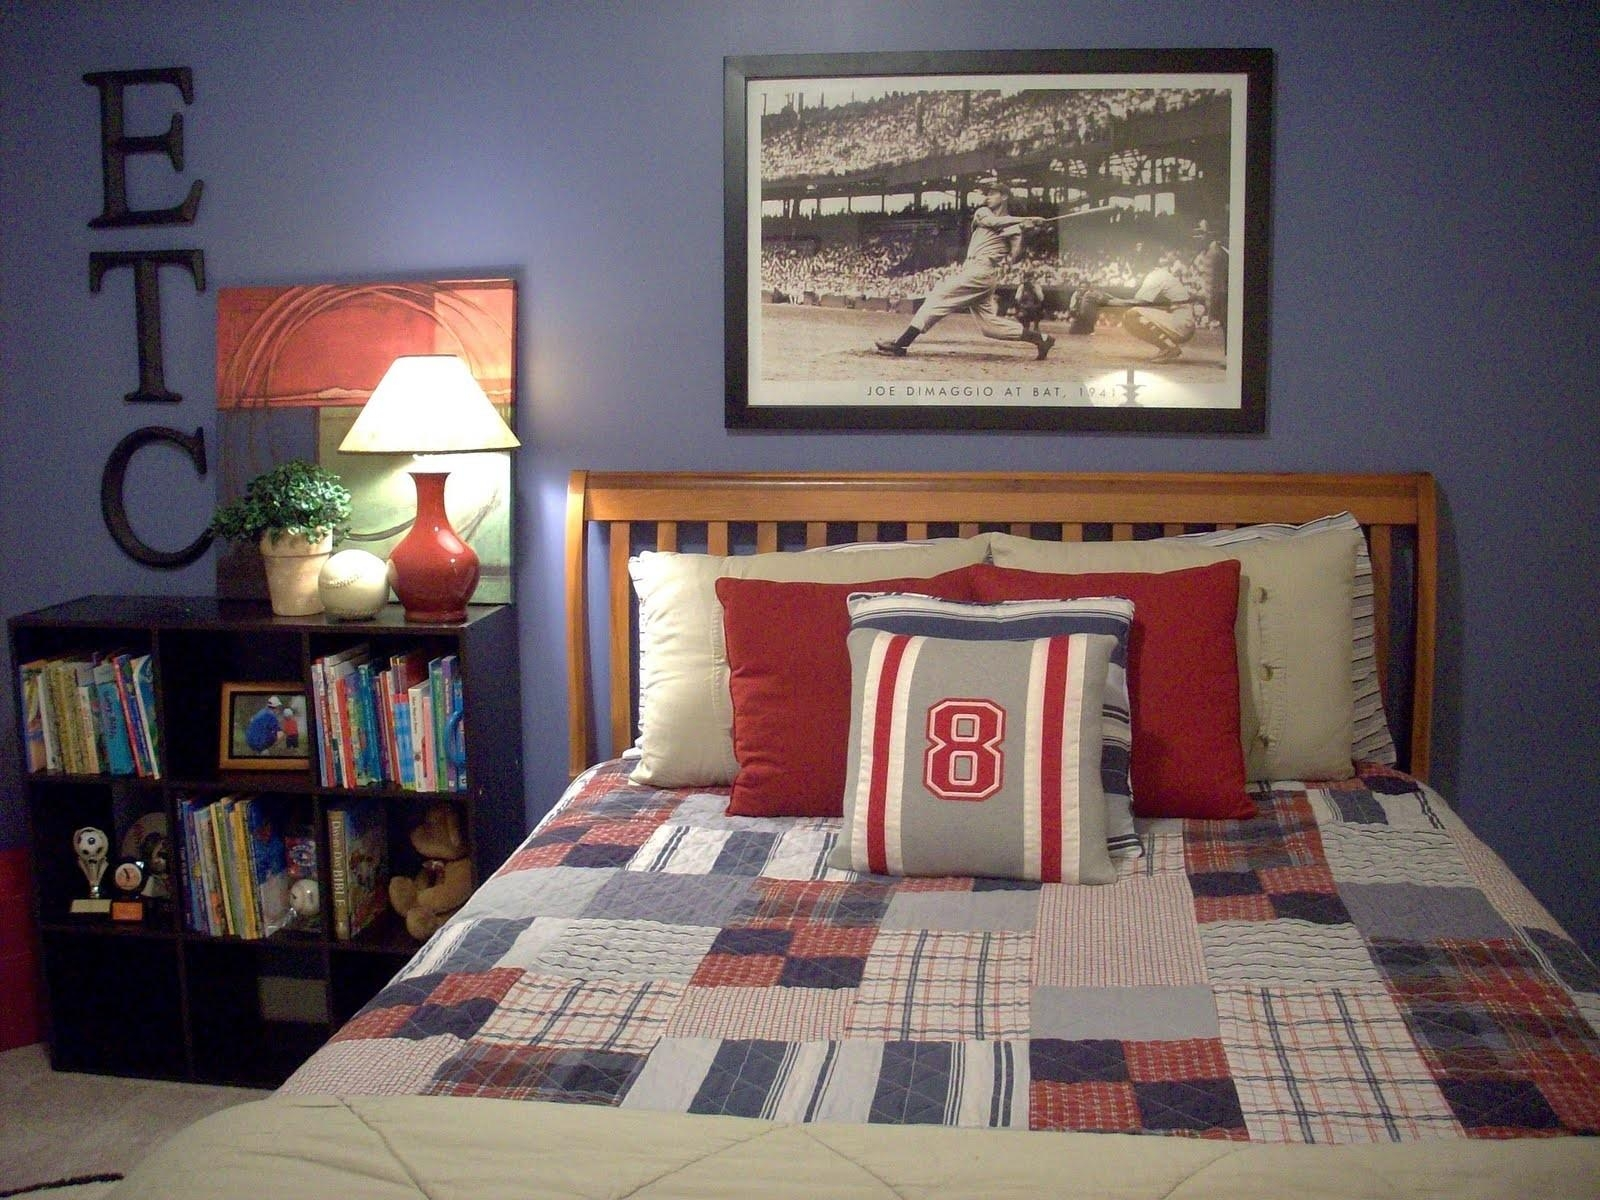 Nursery Beddings Sports Themed Wall Art Plus Vintage Baseball With Regard To Vintage Baseball Wall Art (View 9 of 20)